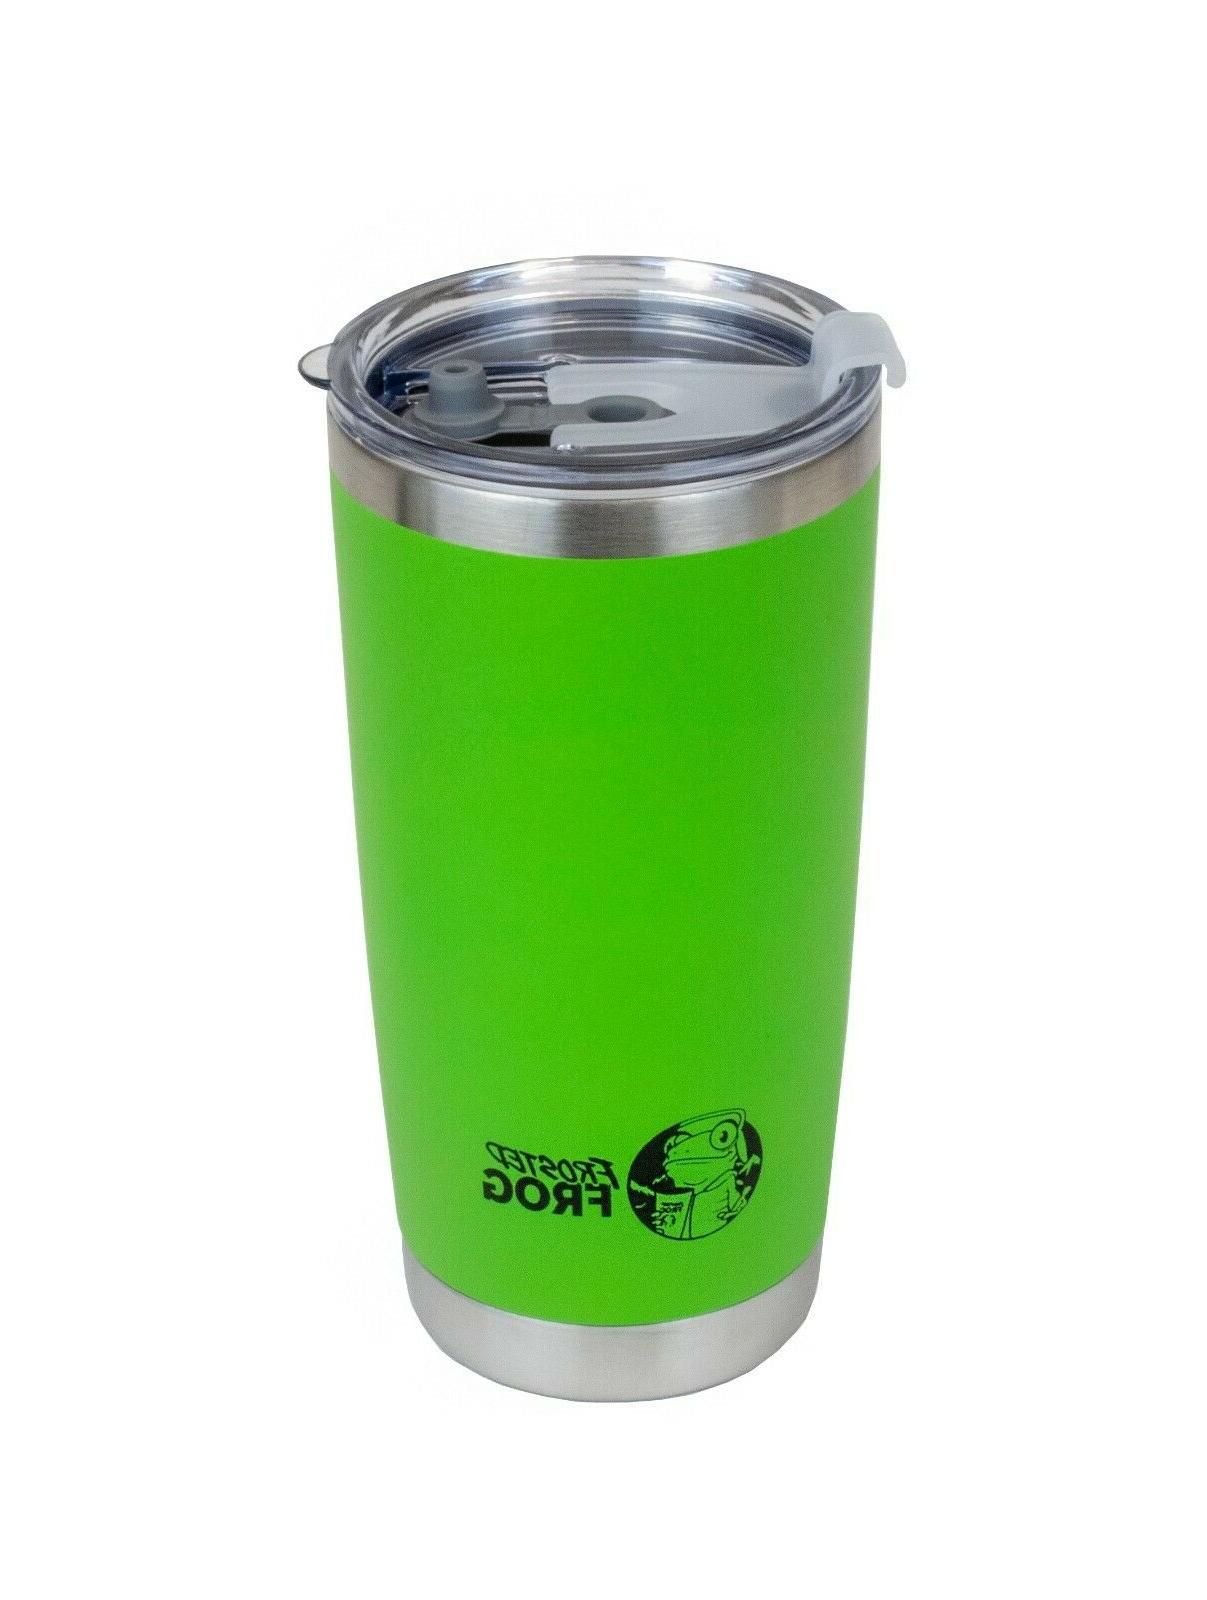 20oz green vacuum insulated tumbler with stainless